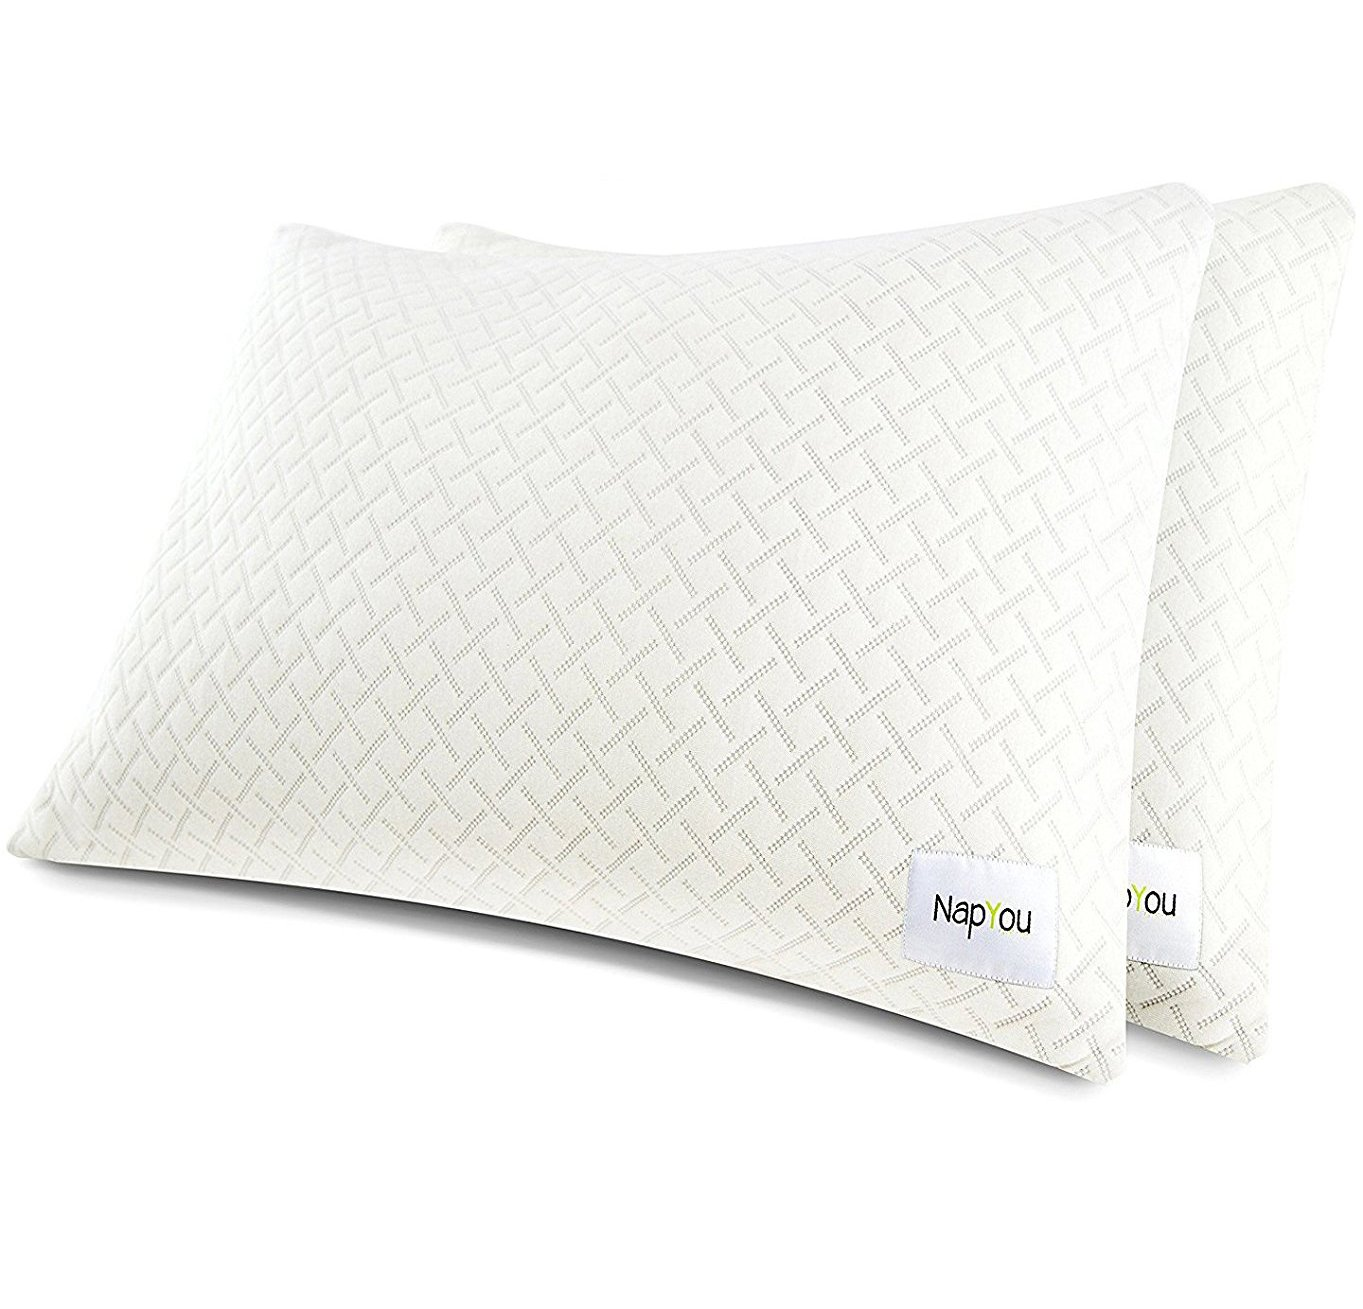 NapYou Official Pillows for Sleeping (2 Pack King) Shredded Certipur Memory Foam Pillow with Unique and Luxury Pillow Cover Design for Ultimate Breathability Made with Organic Cotton